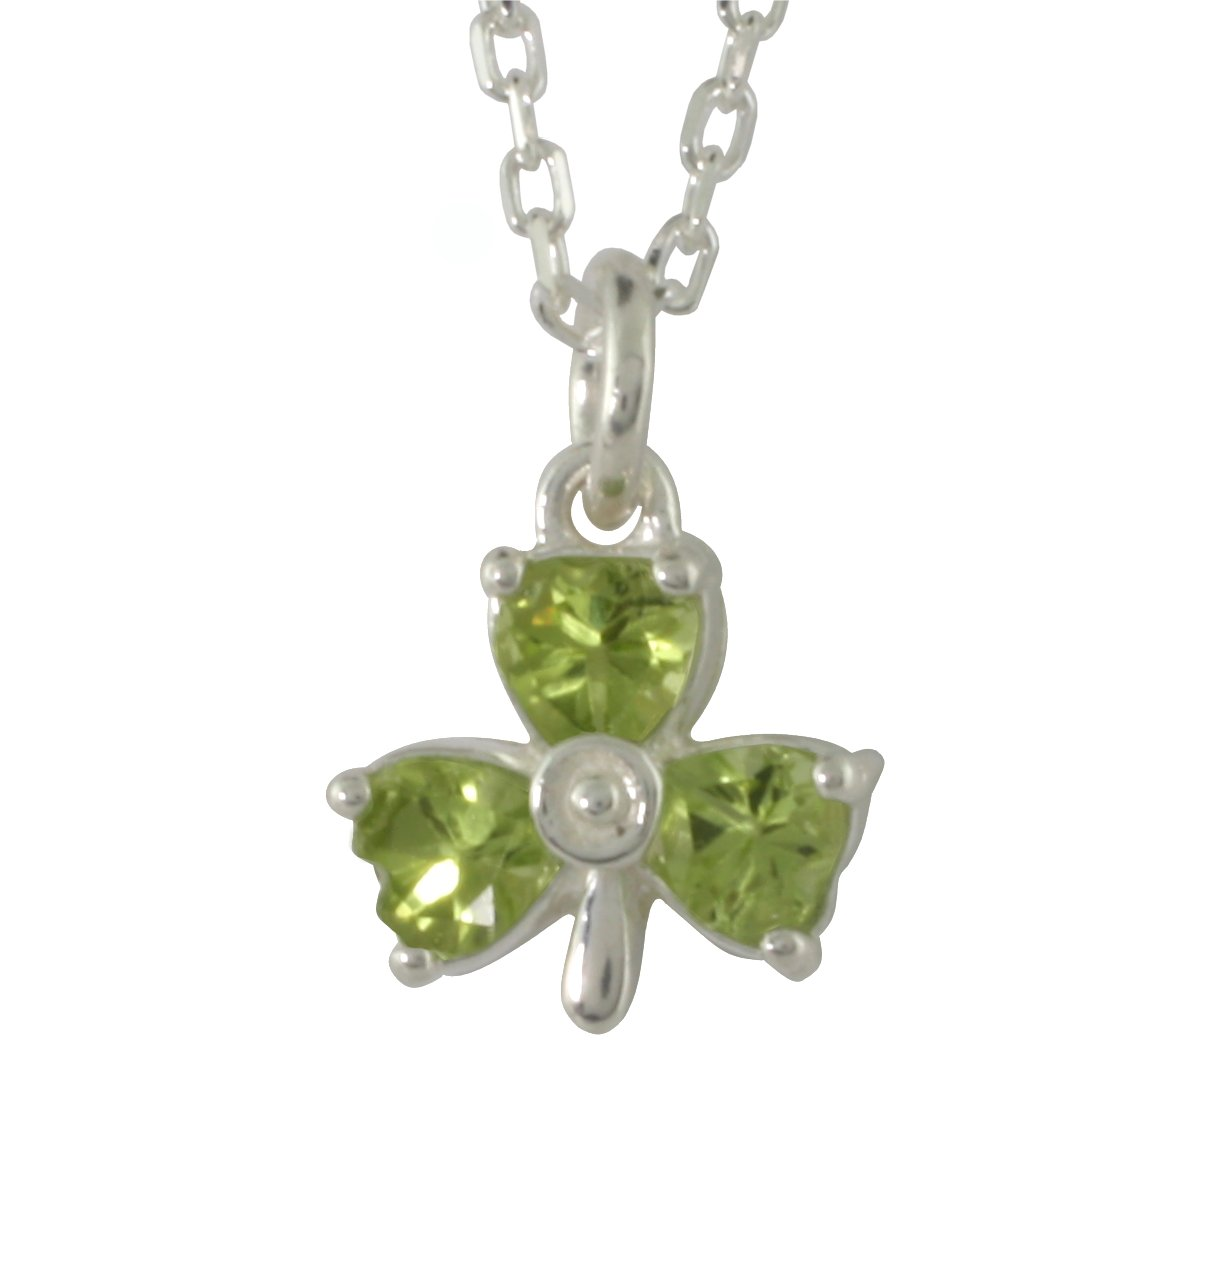 Heart shape peridot set in a shamrock pendant